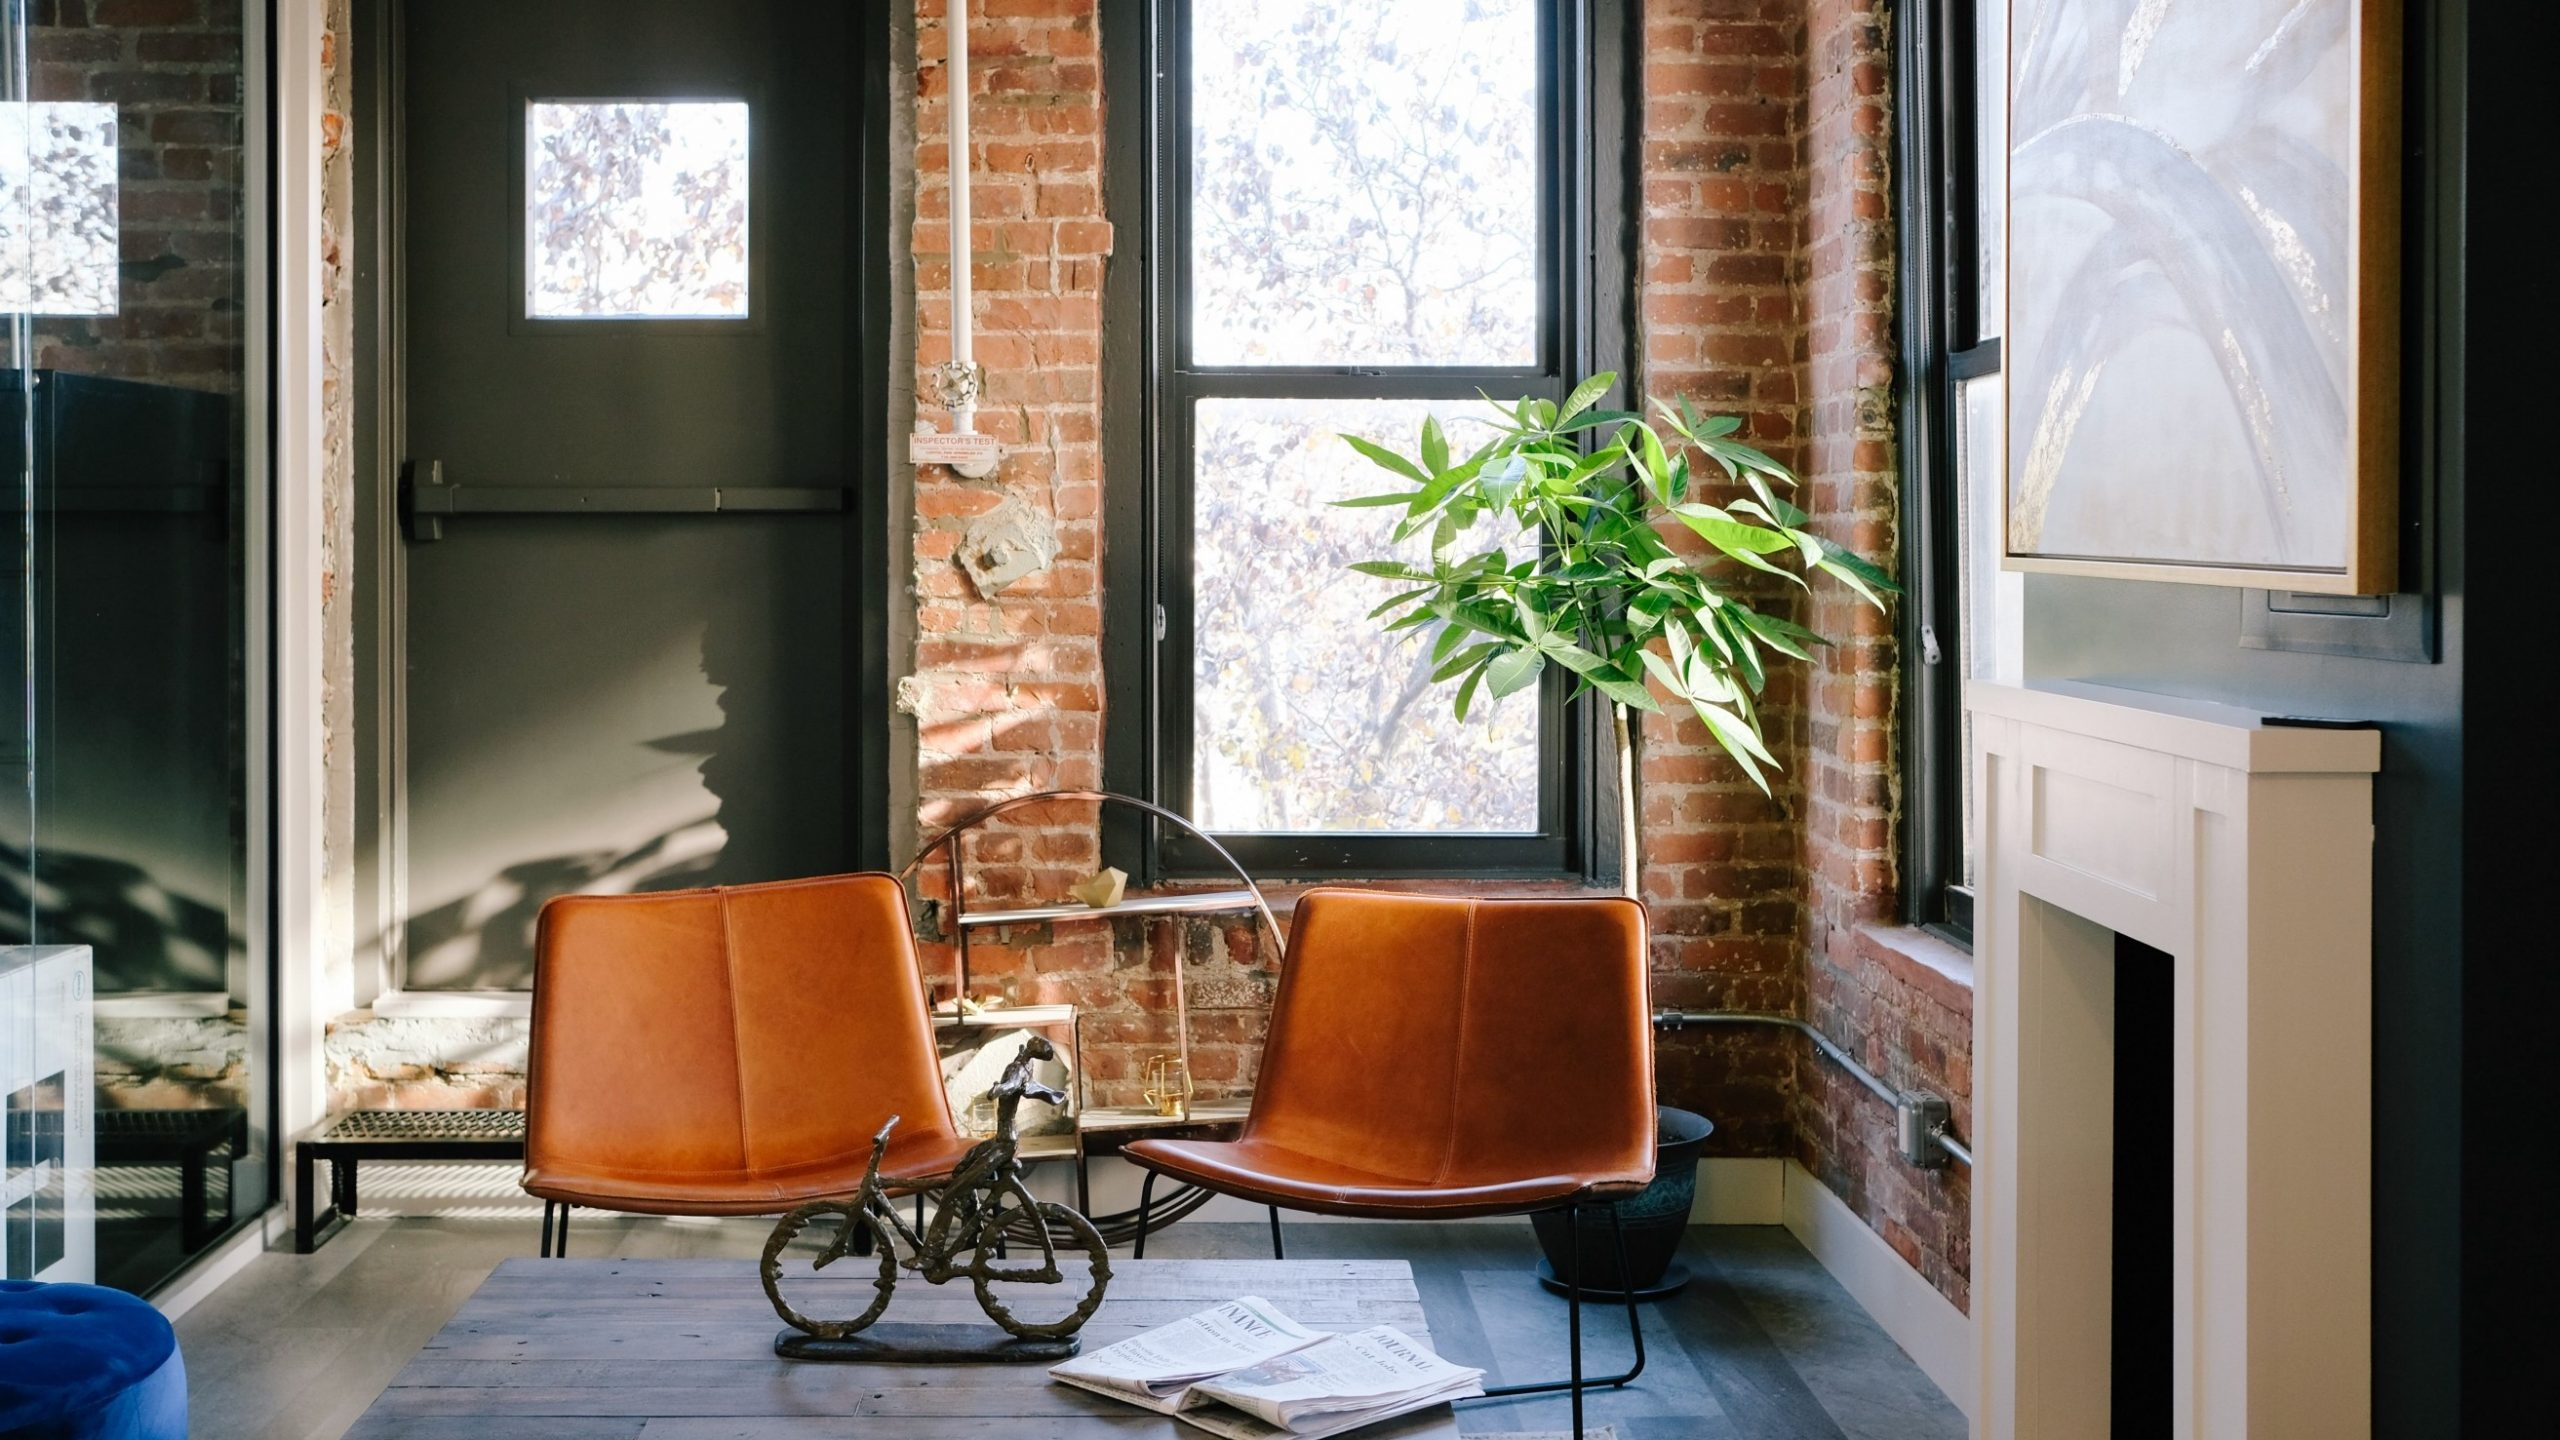 How Co-living Companies are Shaping Today's Rental Market